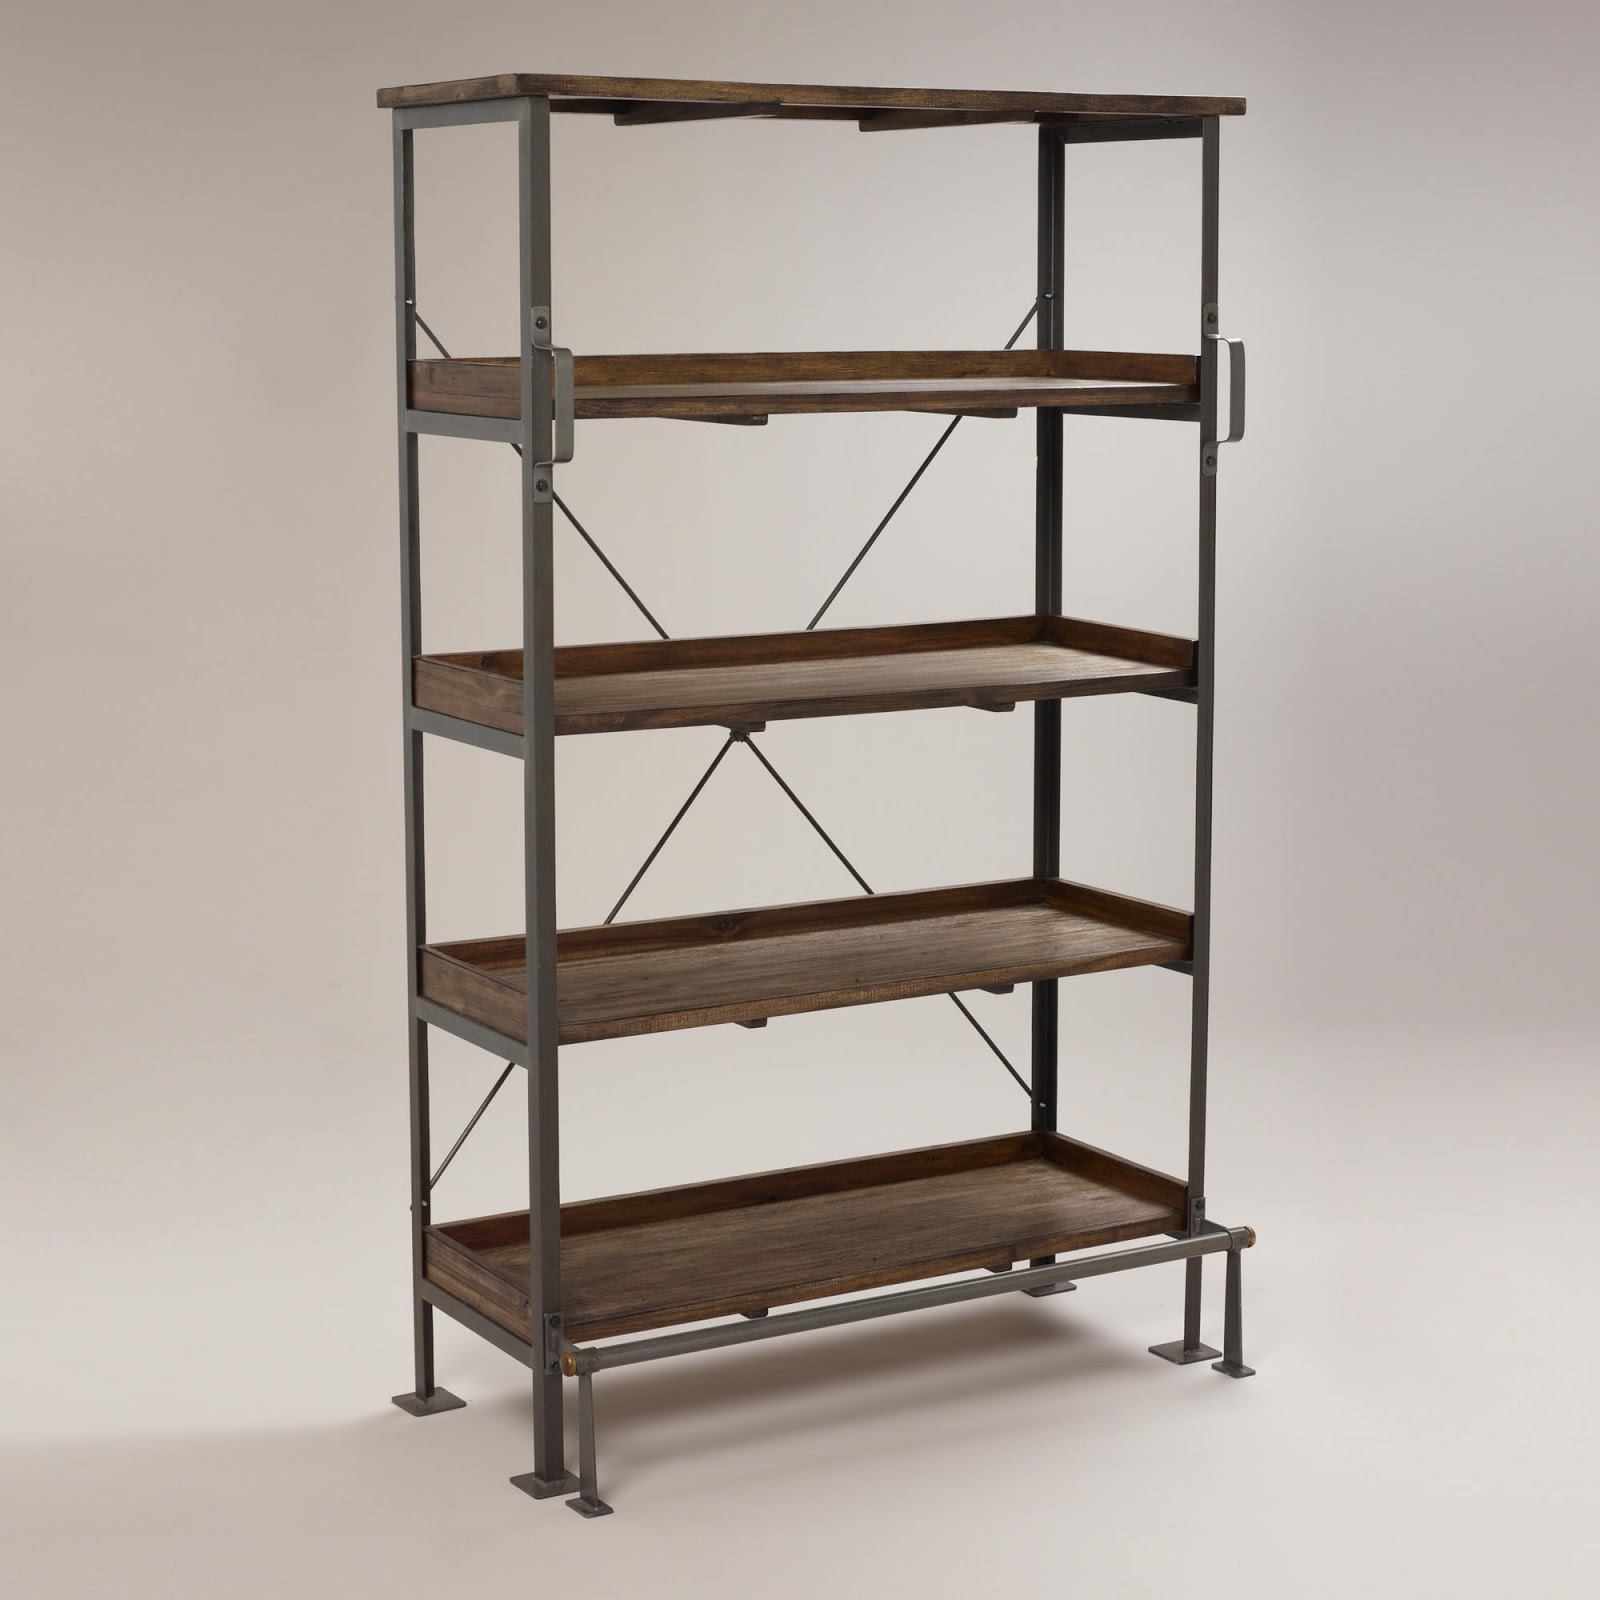 Restoration Hardware French Library Shelving Decor Look Crate And Barrel Shift Bookcase Bookshelf